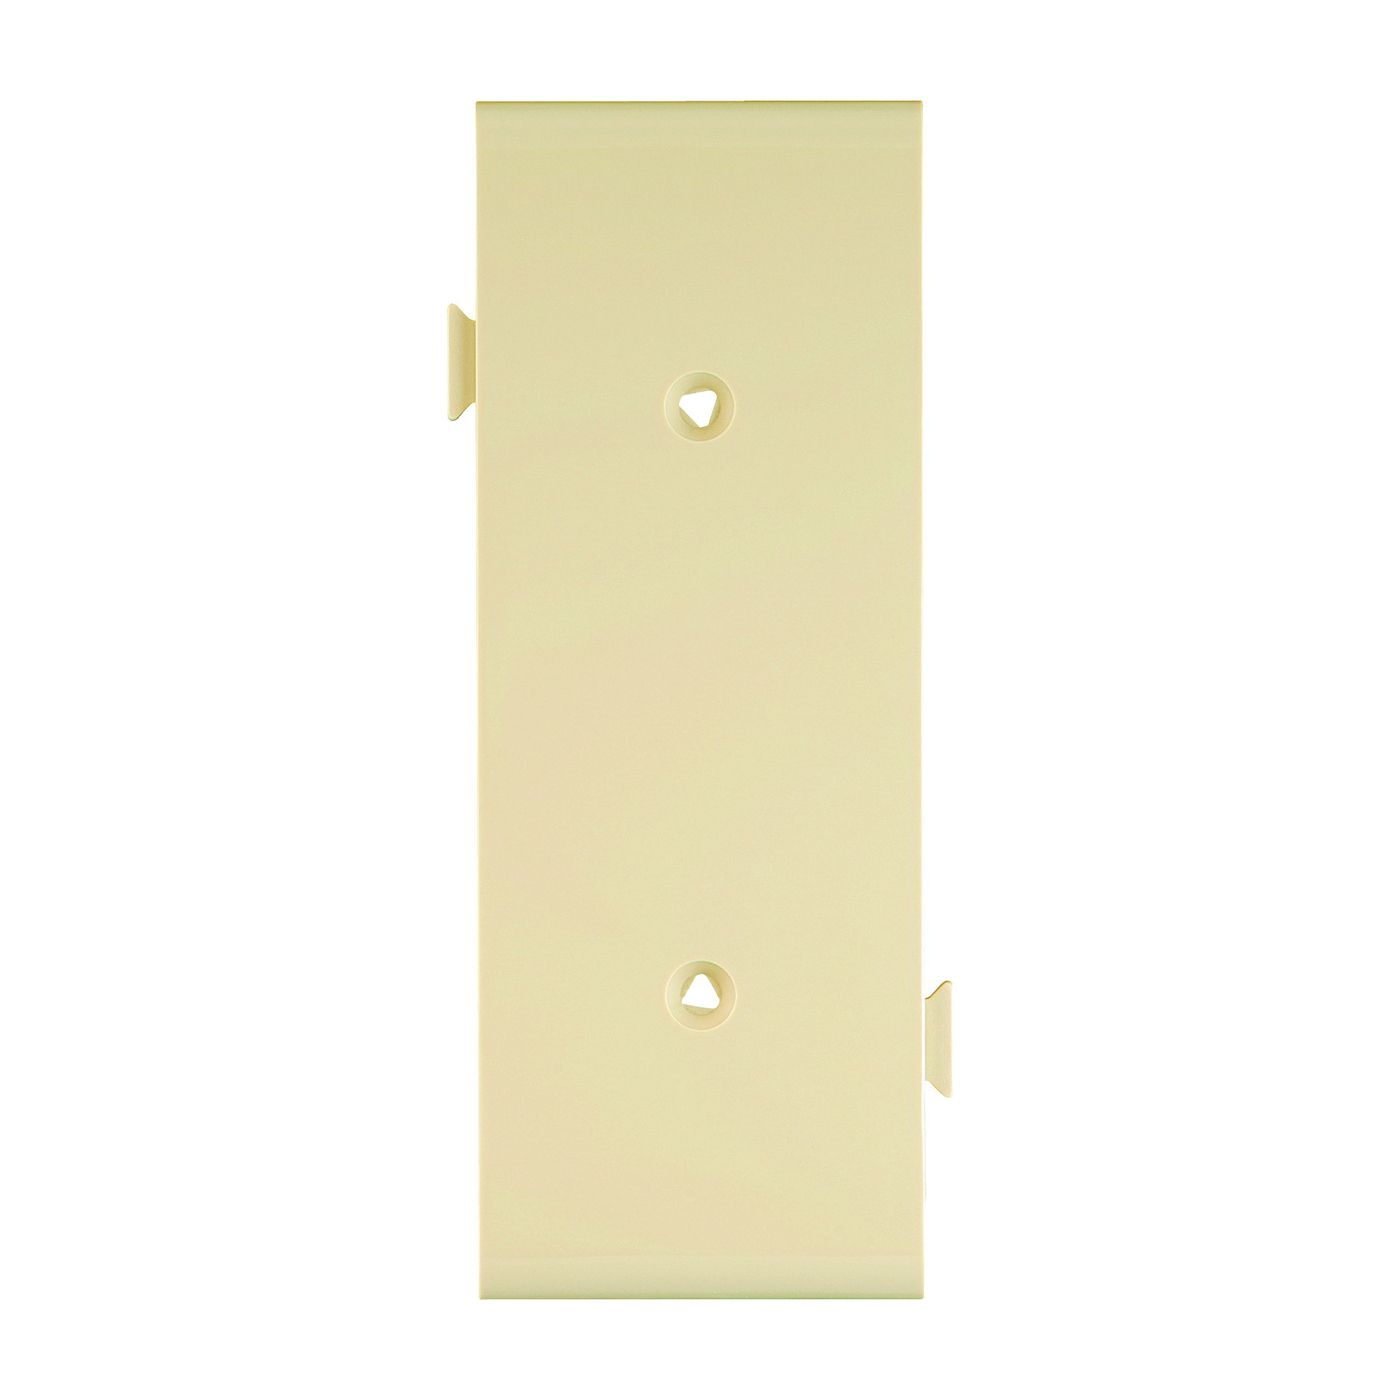 Picture of Eaton Cooper Wiring STC14V Wallplate, 1.9 in L, 4.83 in W, 1-Gang, Polycarbonate, Ivory, High-Gloss